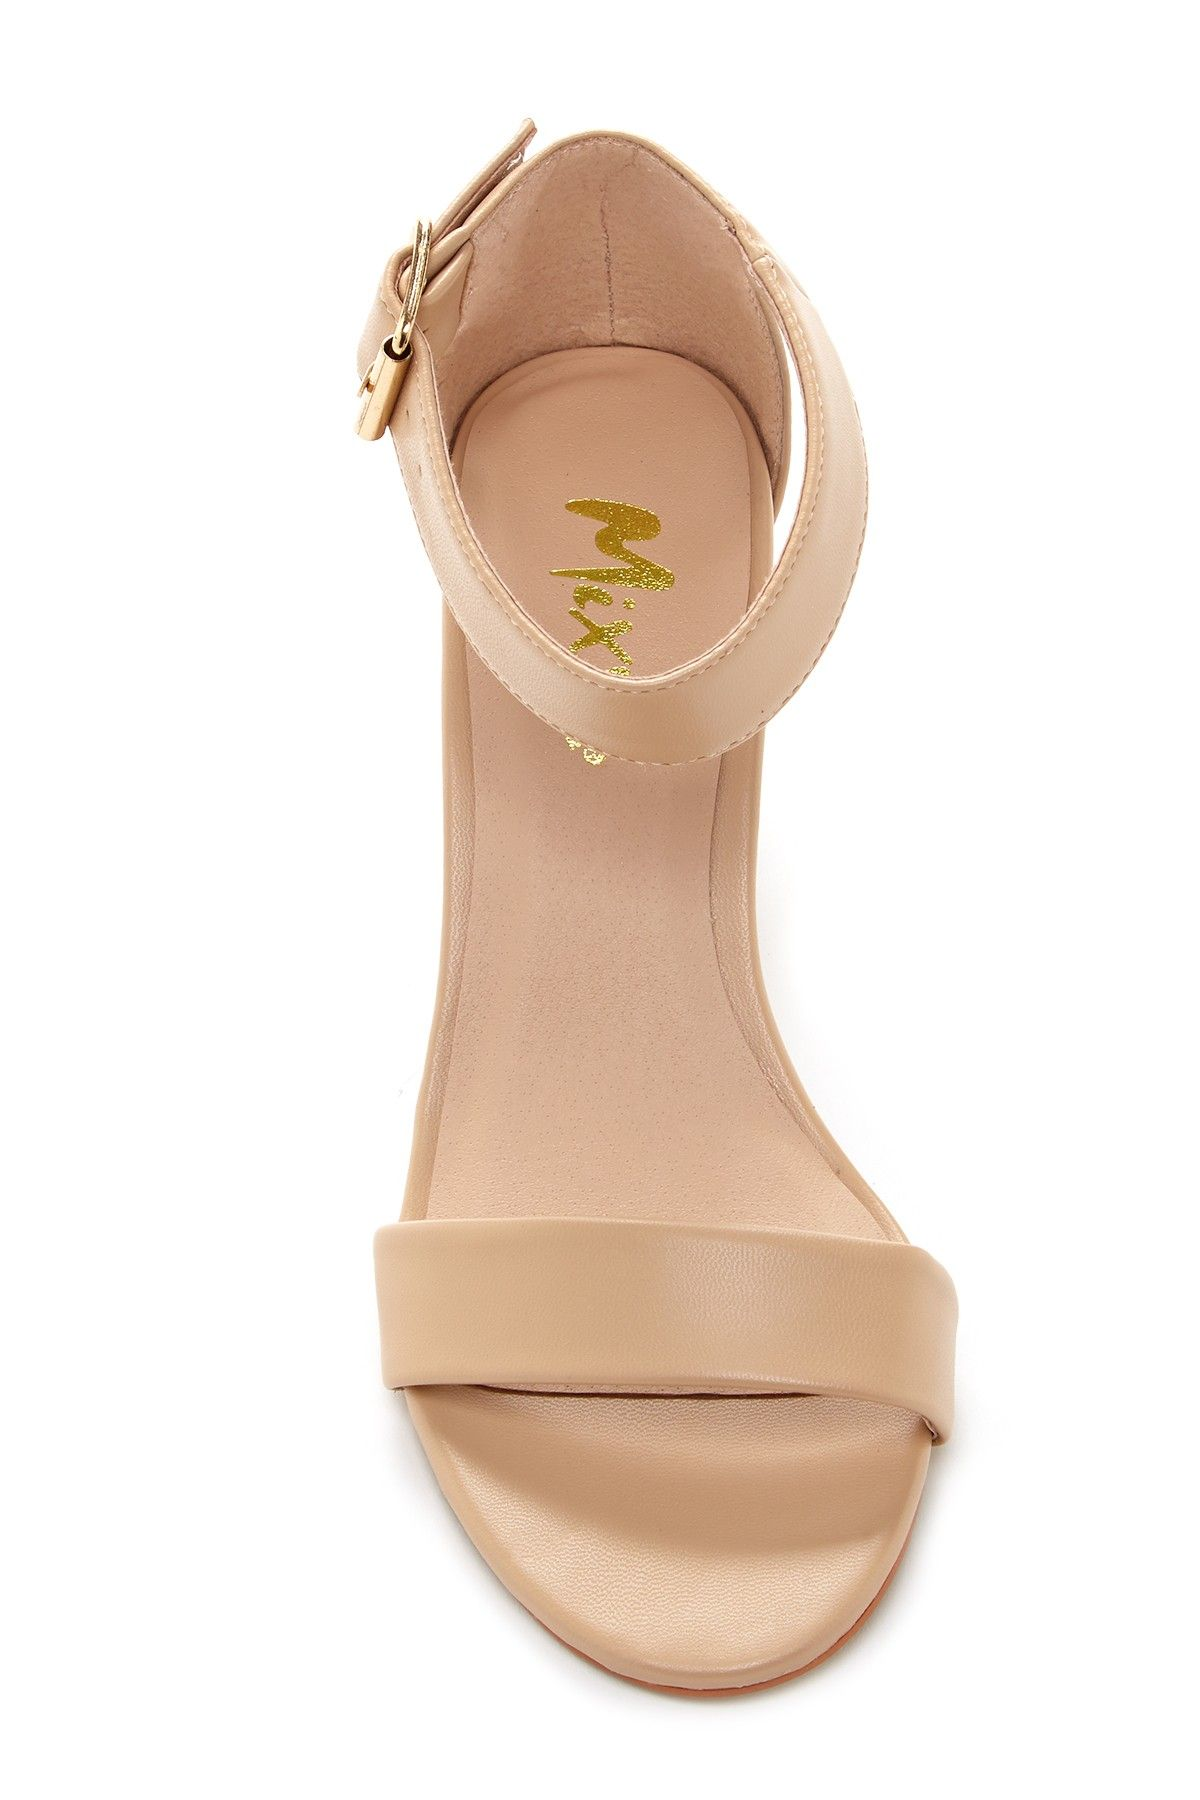 Mixx Shuz - Ava Block Heel Sandal is now 0-25% off. Free Shipping on orders over $100.